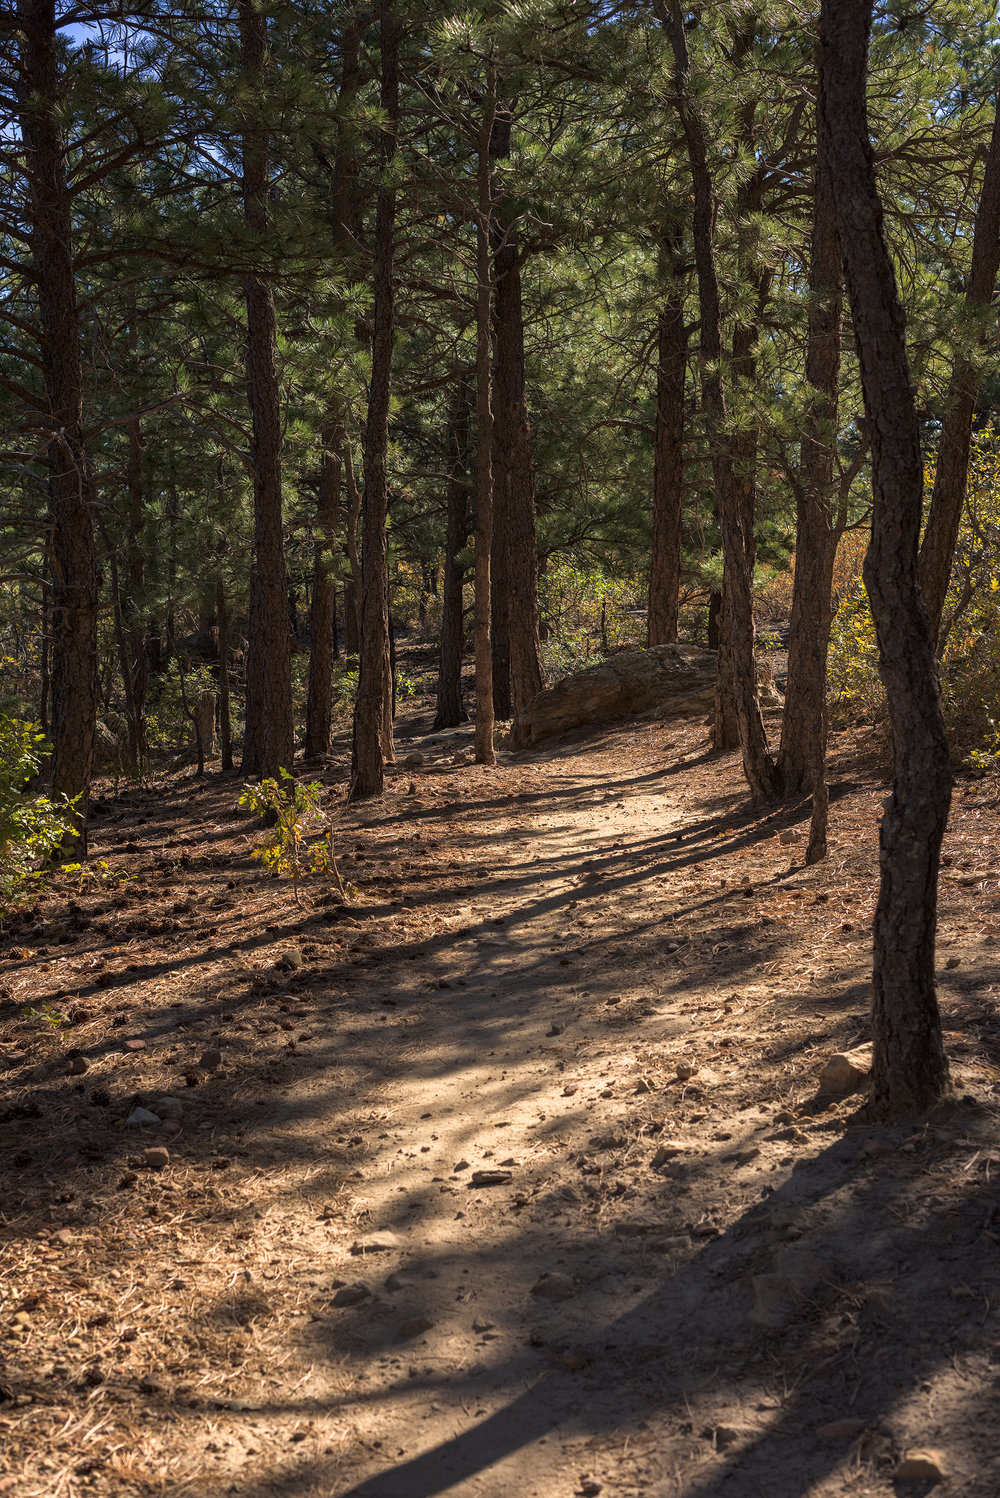 BTP_Ute_Valley_Park_Scrub_Oak_Path.jpg